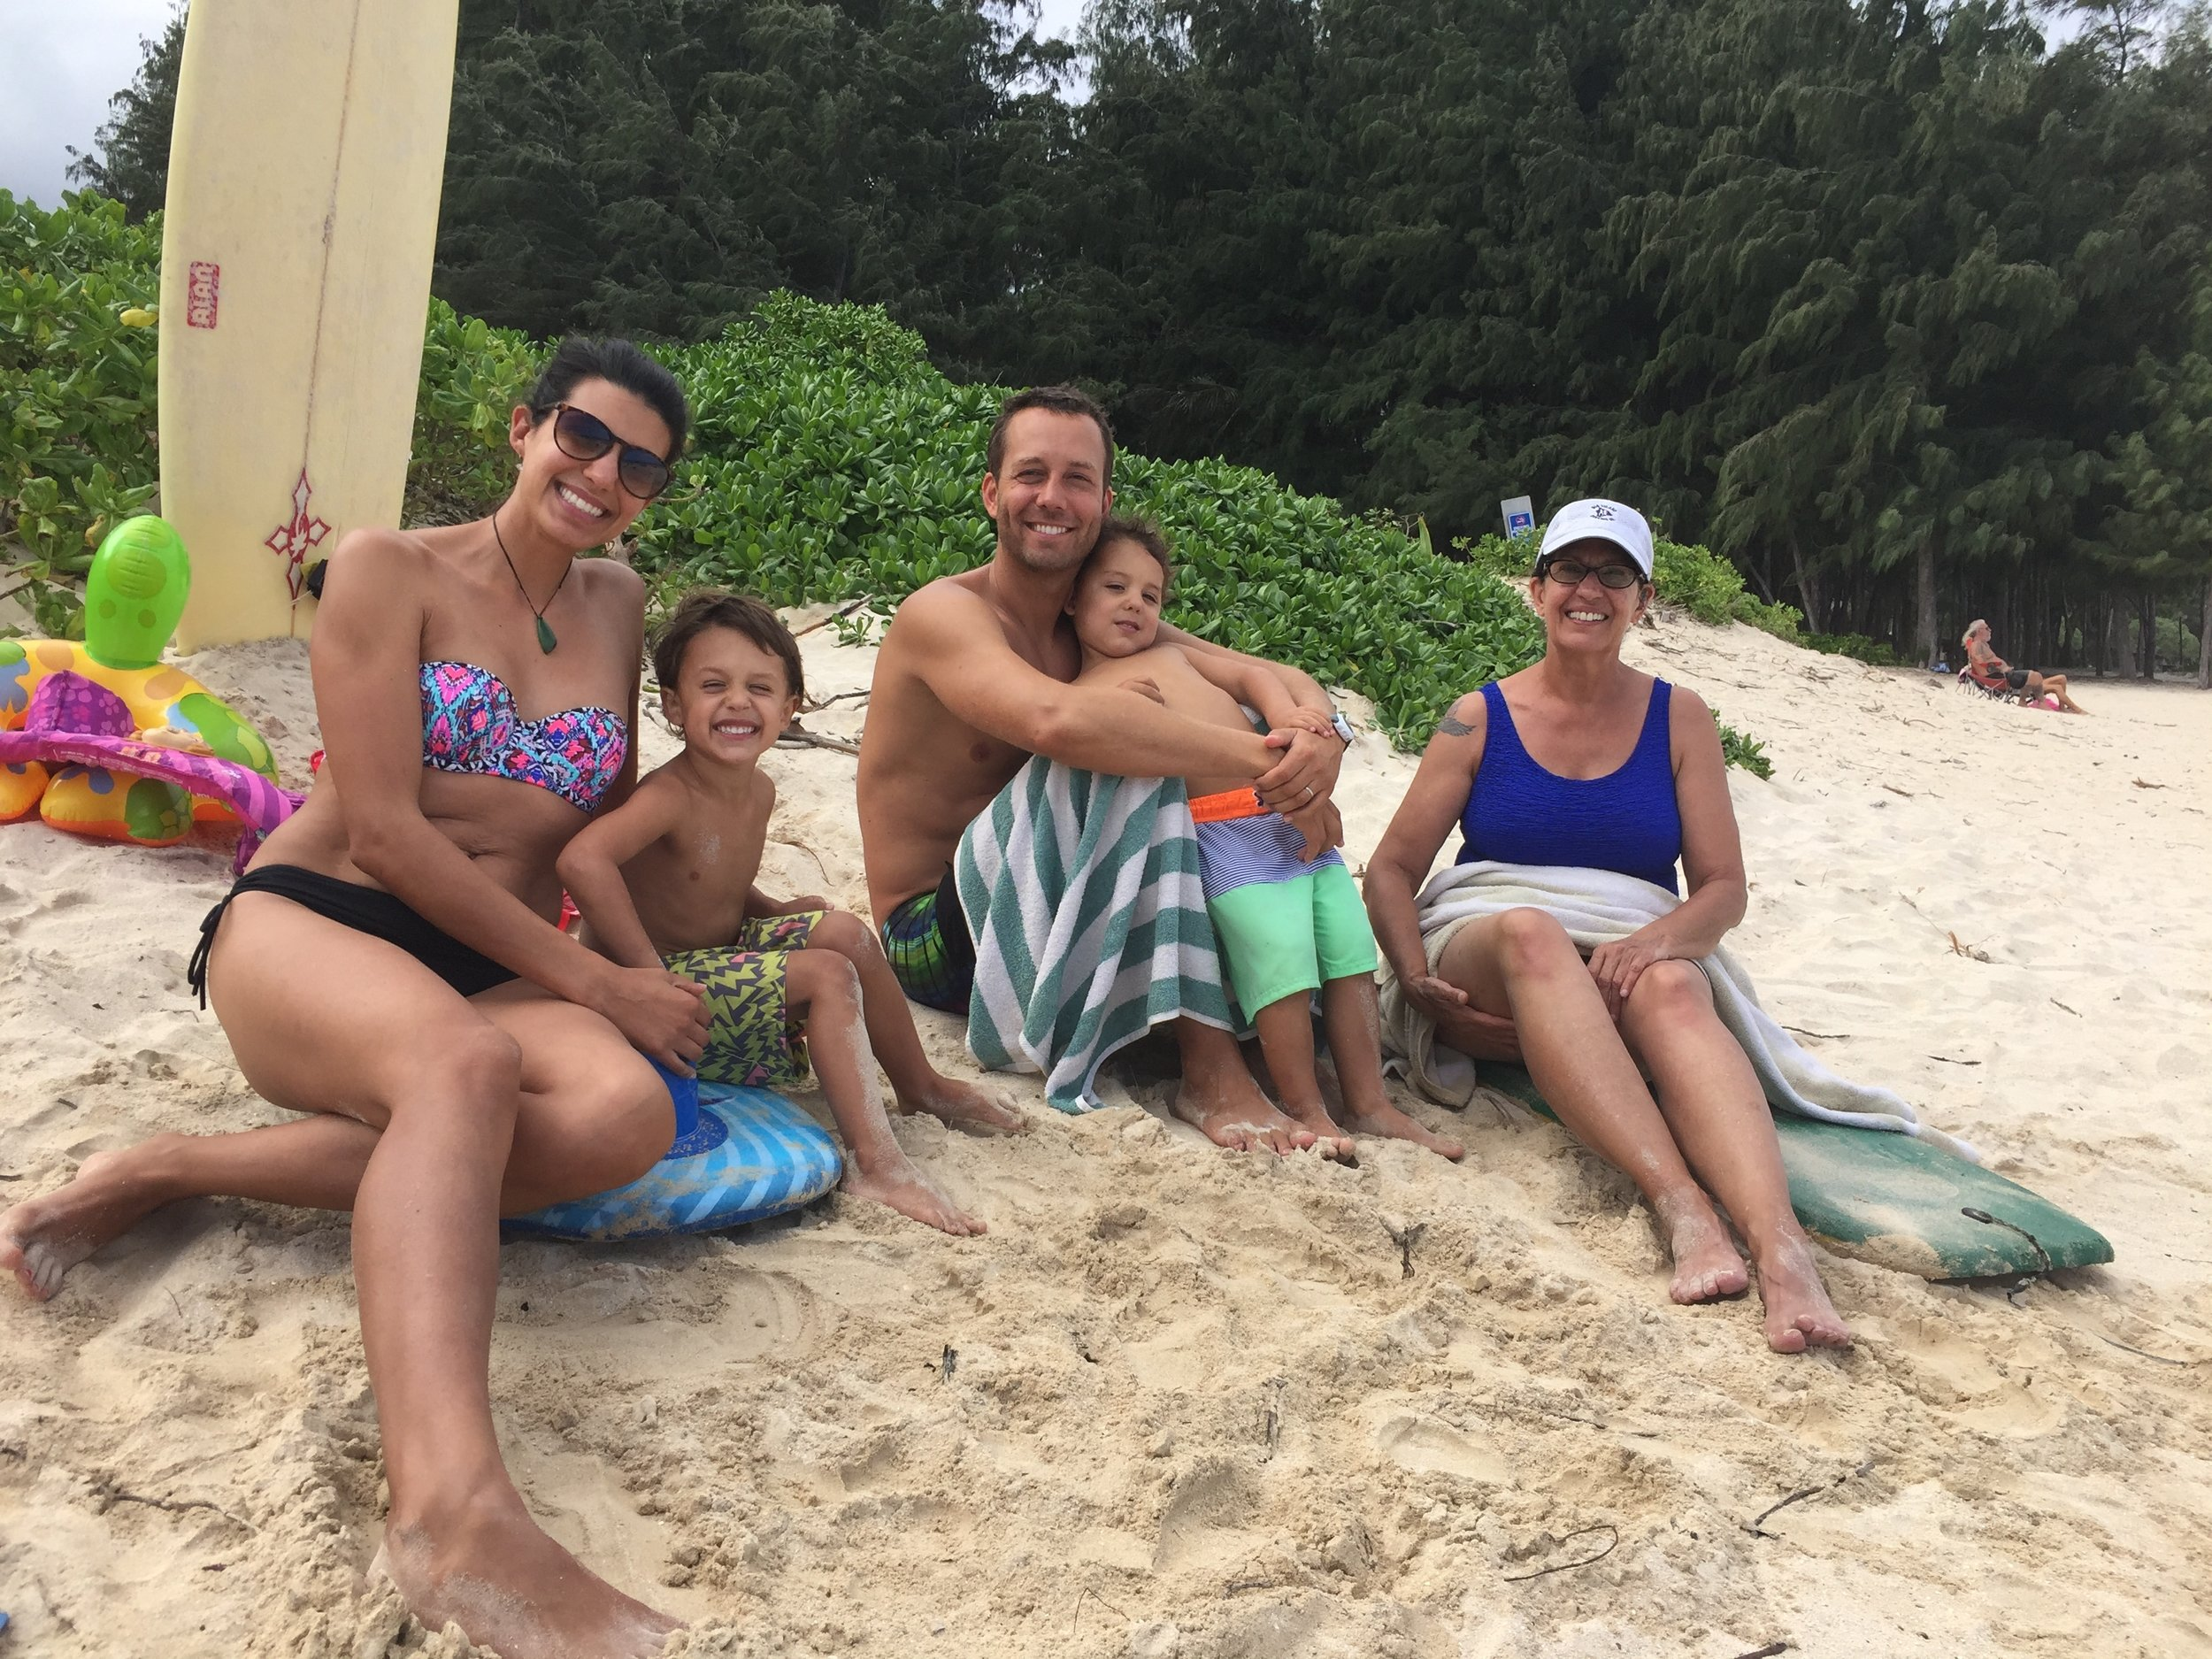 At Kailua Beach Park with Mimi/Teedo/Marti (she has many nicknames).